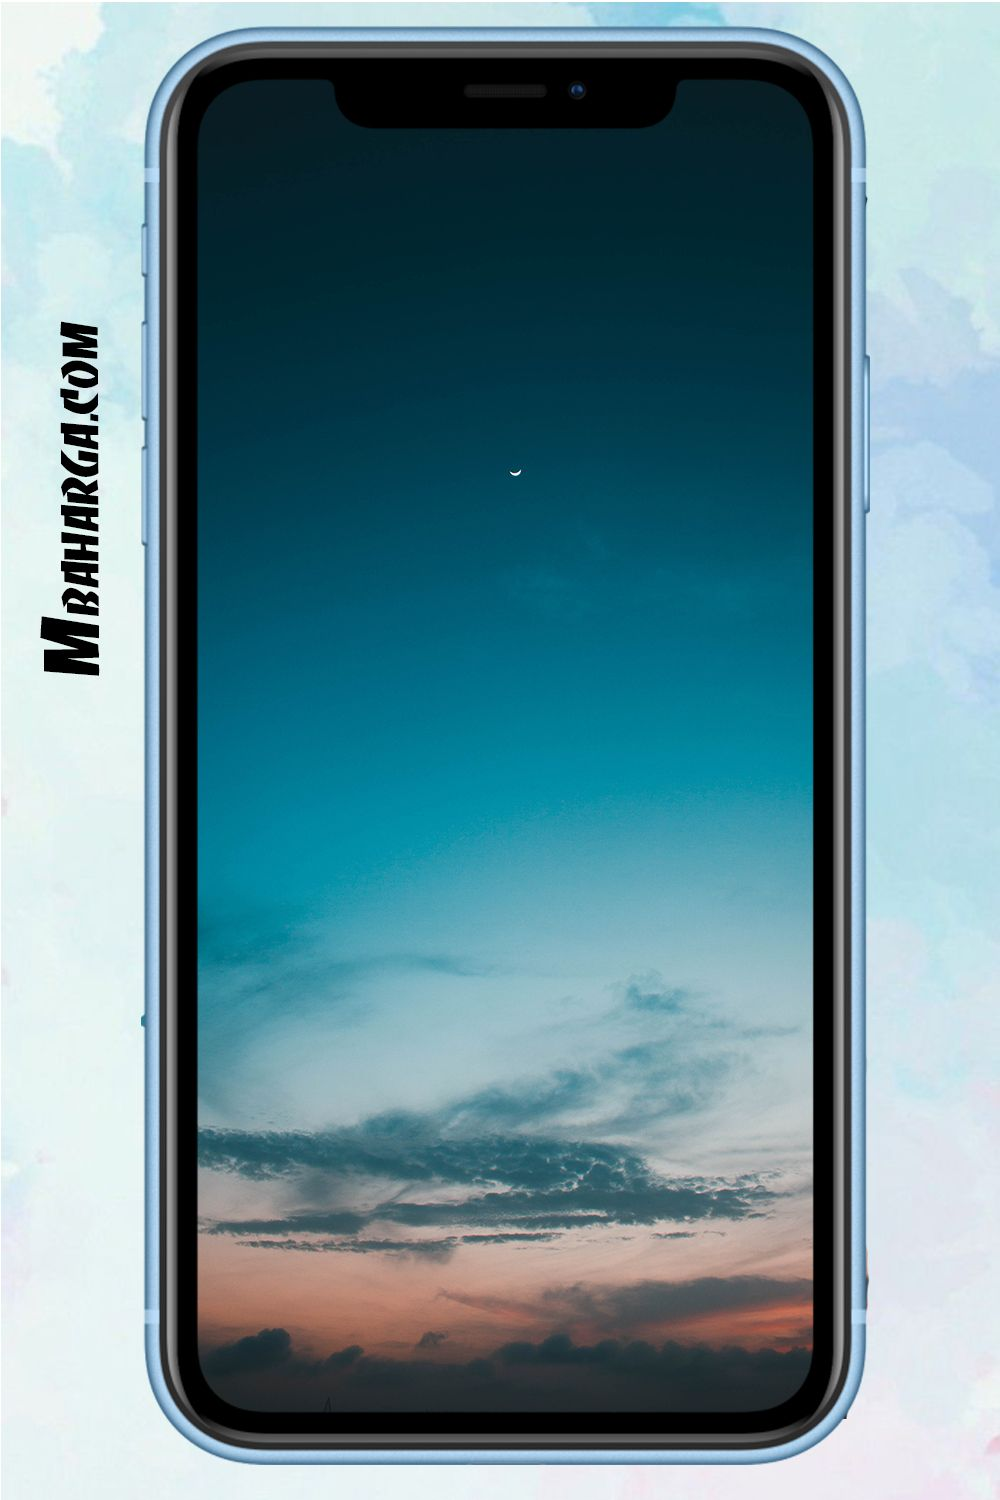 Iphone X Notch Hiding Wallpapers In 2020 Iphone Wallpaper Best Iphone